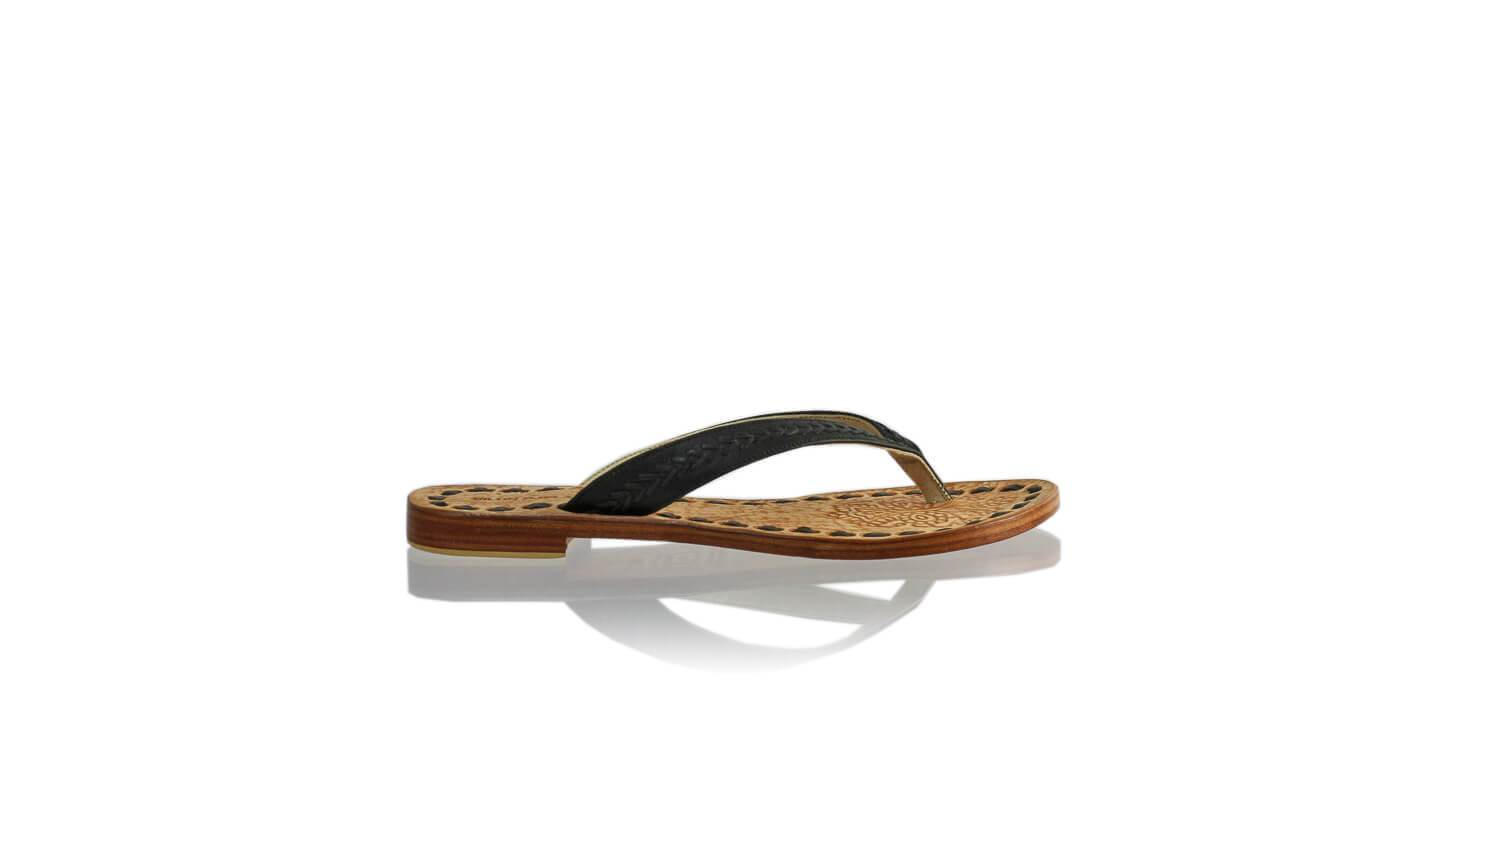 Leather-shoes-Ayu 20mm Flat - Black-sandals flat-NILUH DJELANTIK-NILUH DJELANTIK